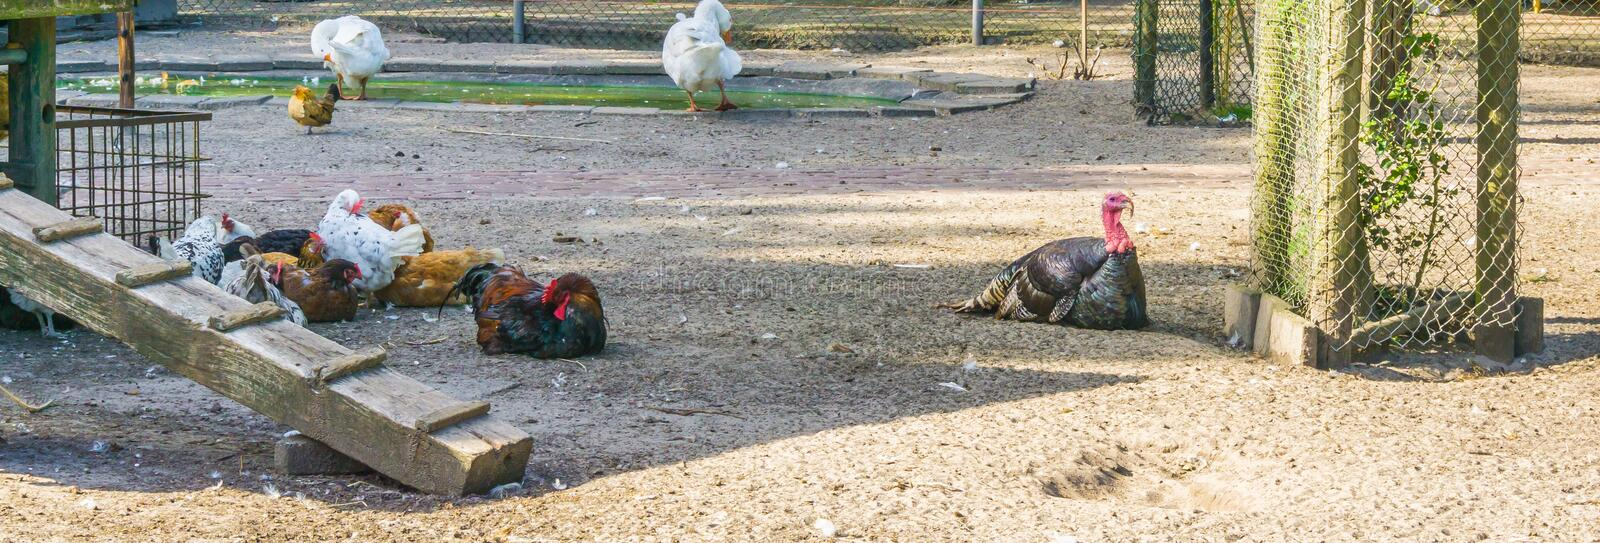 Black turkey with a group of chickens at the animal farm stock photo